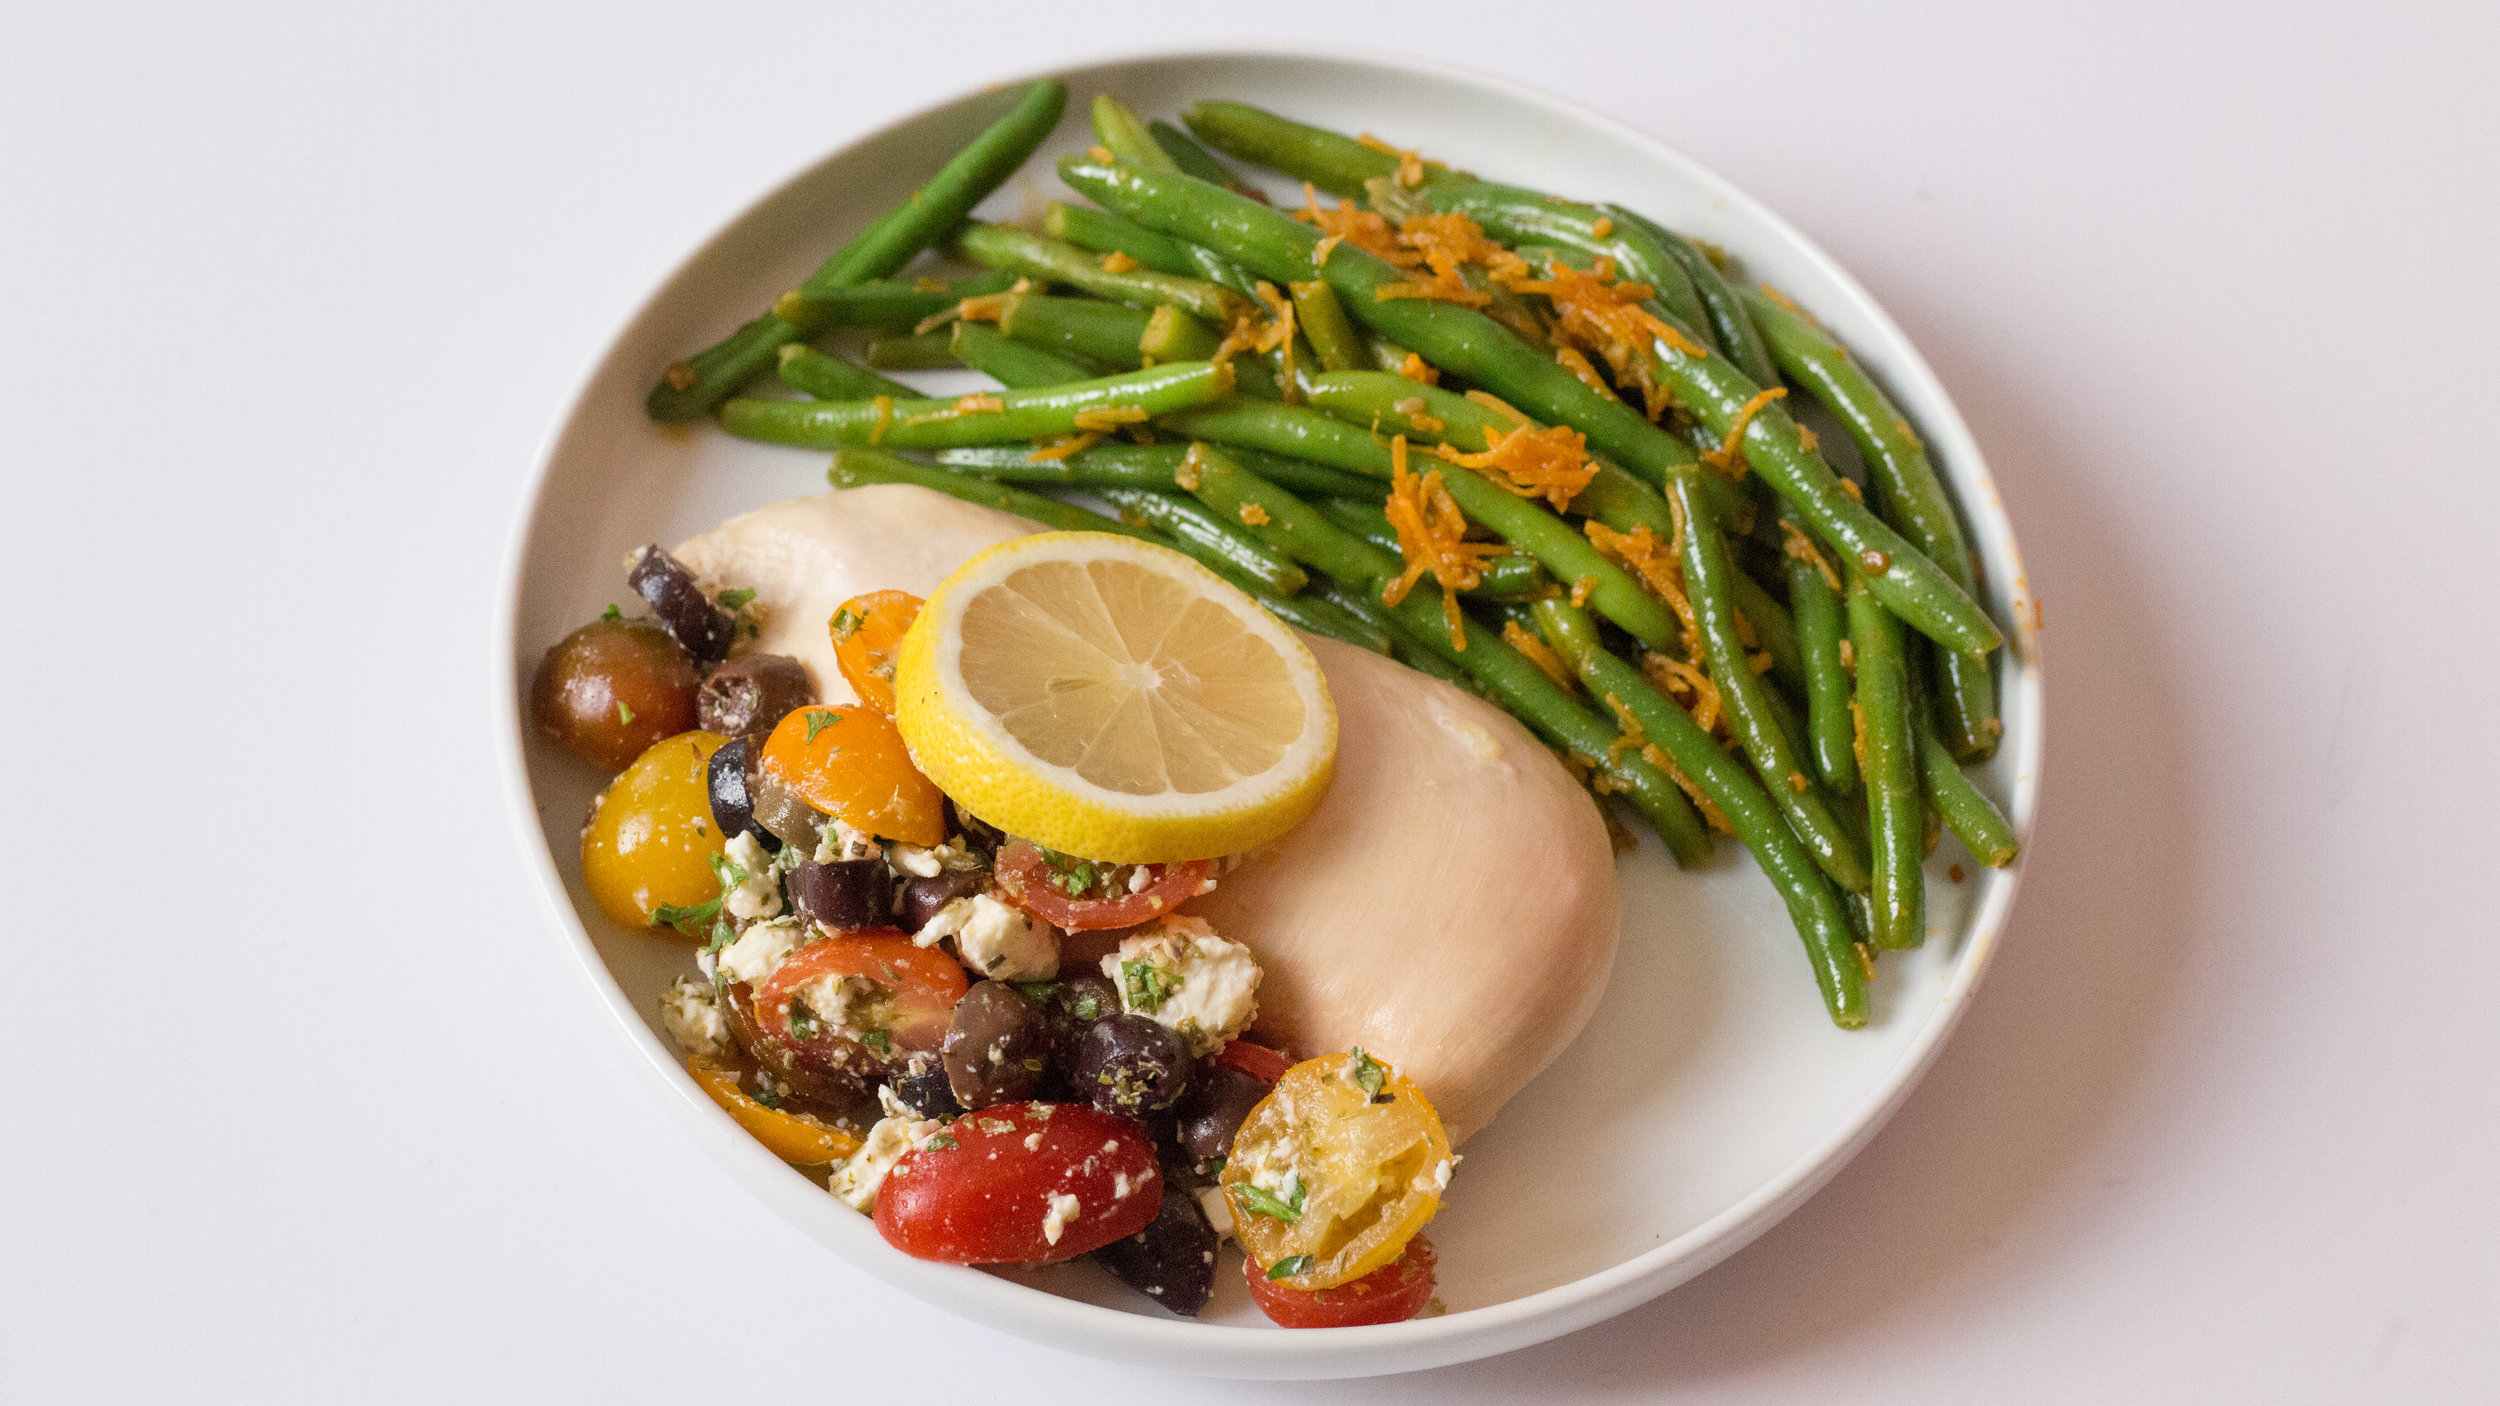 Med Chicken w- Green Beans Final Plated 16x9.jpg